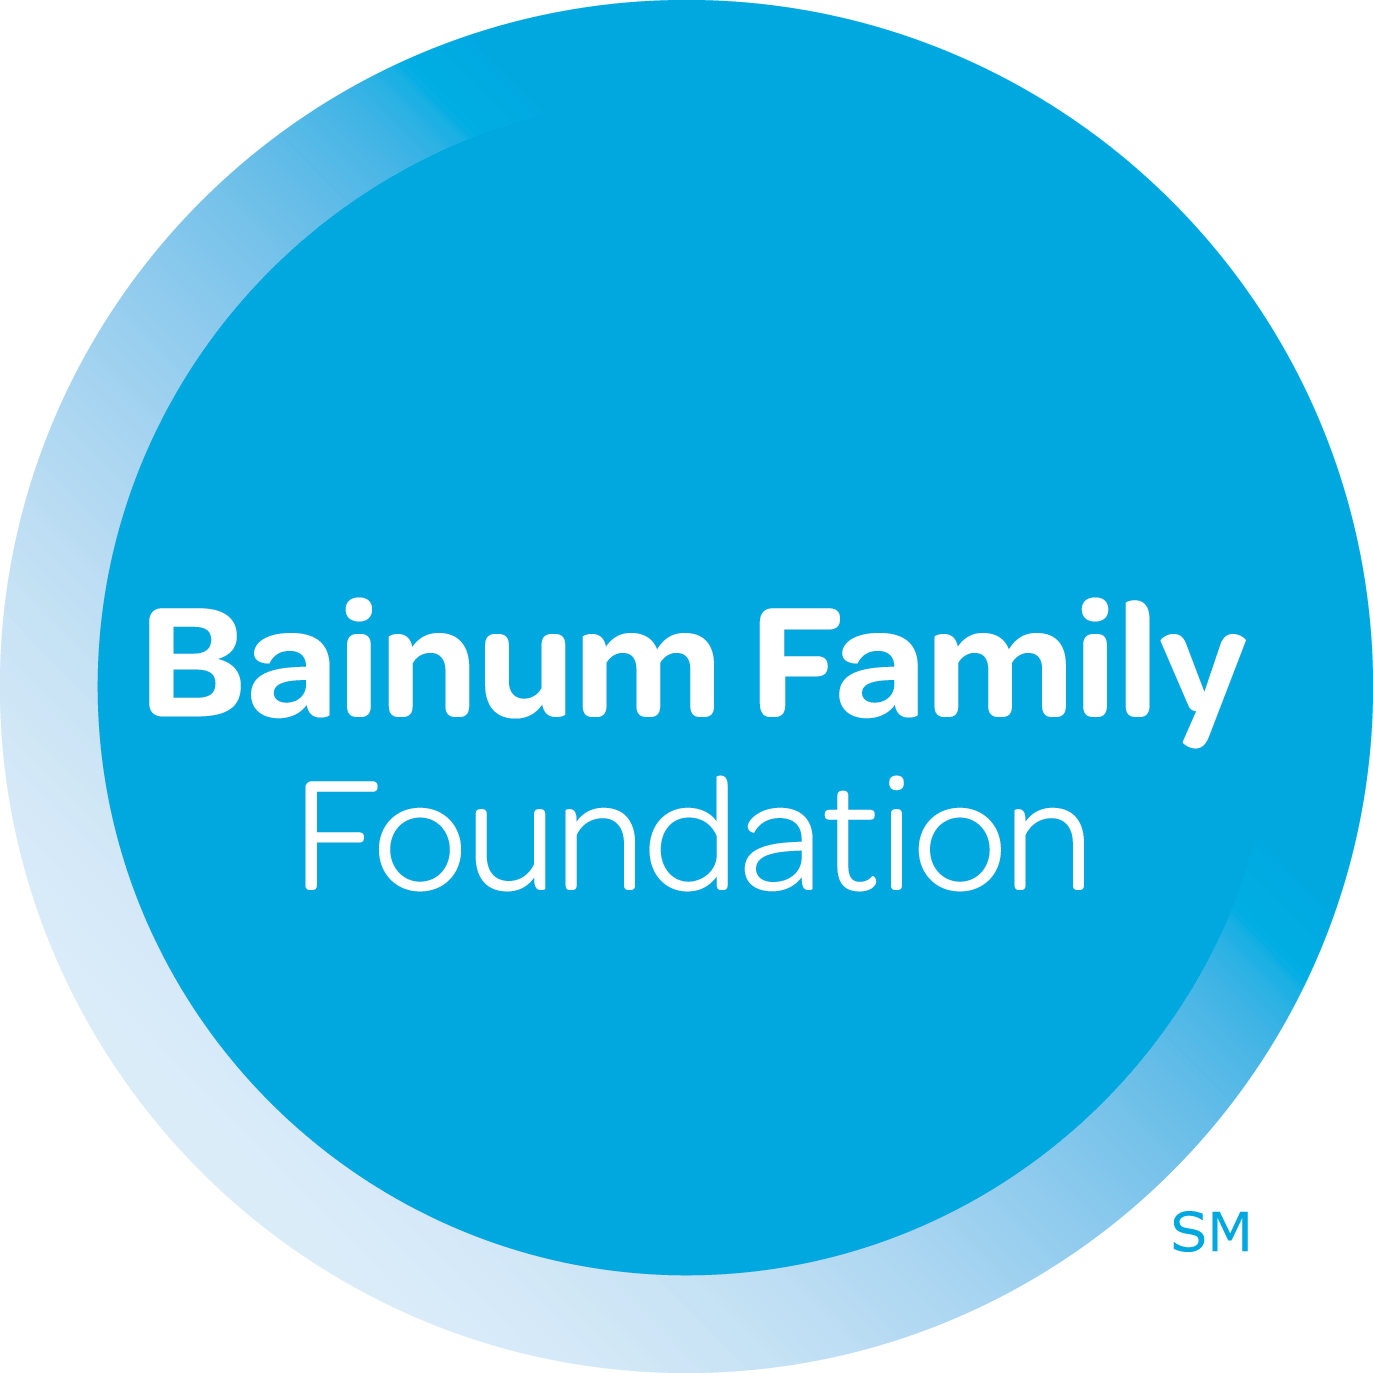 - Founded in 1968 by Stewart Bainum, the Bainum Family Foundation has supported early childhood education for kids across the DMV through scholarships, healthcare and other educational opportunities.